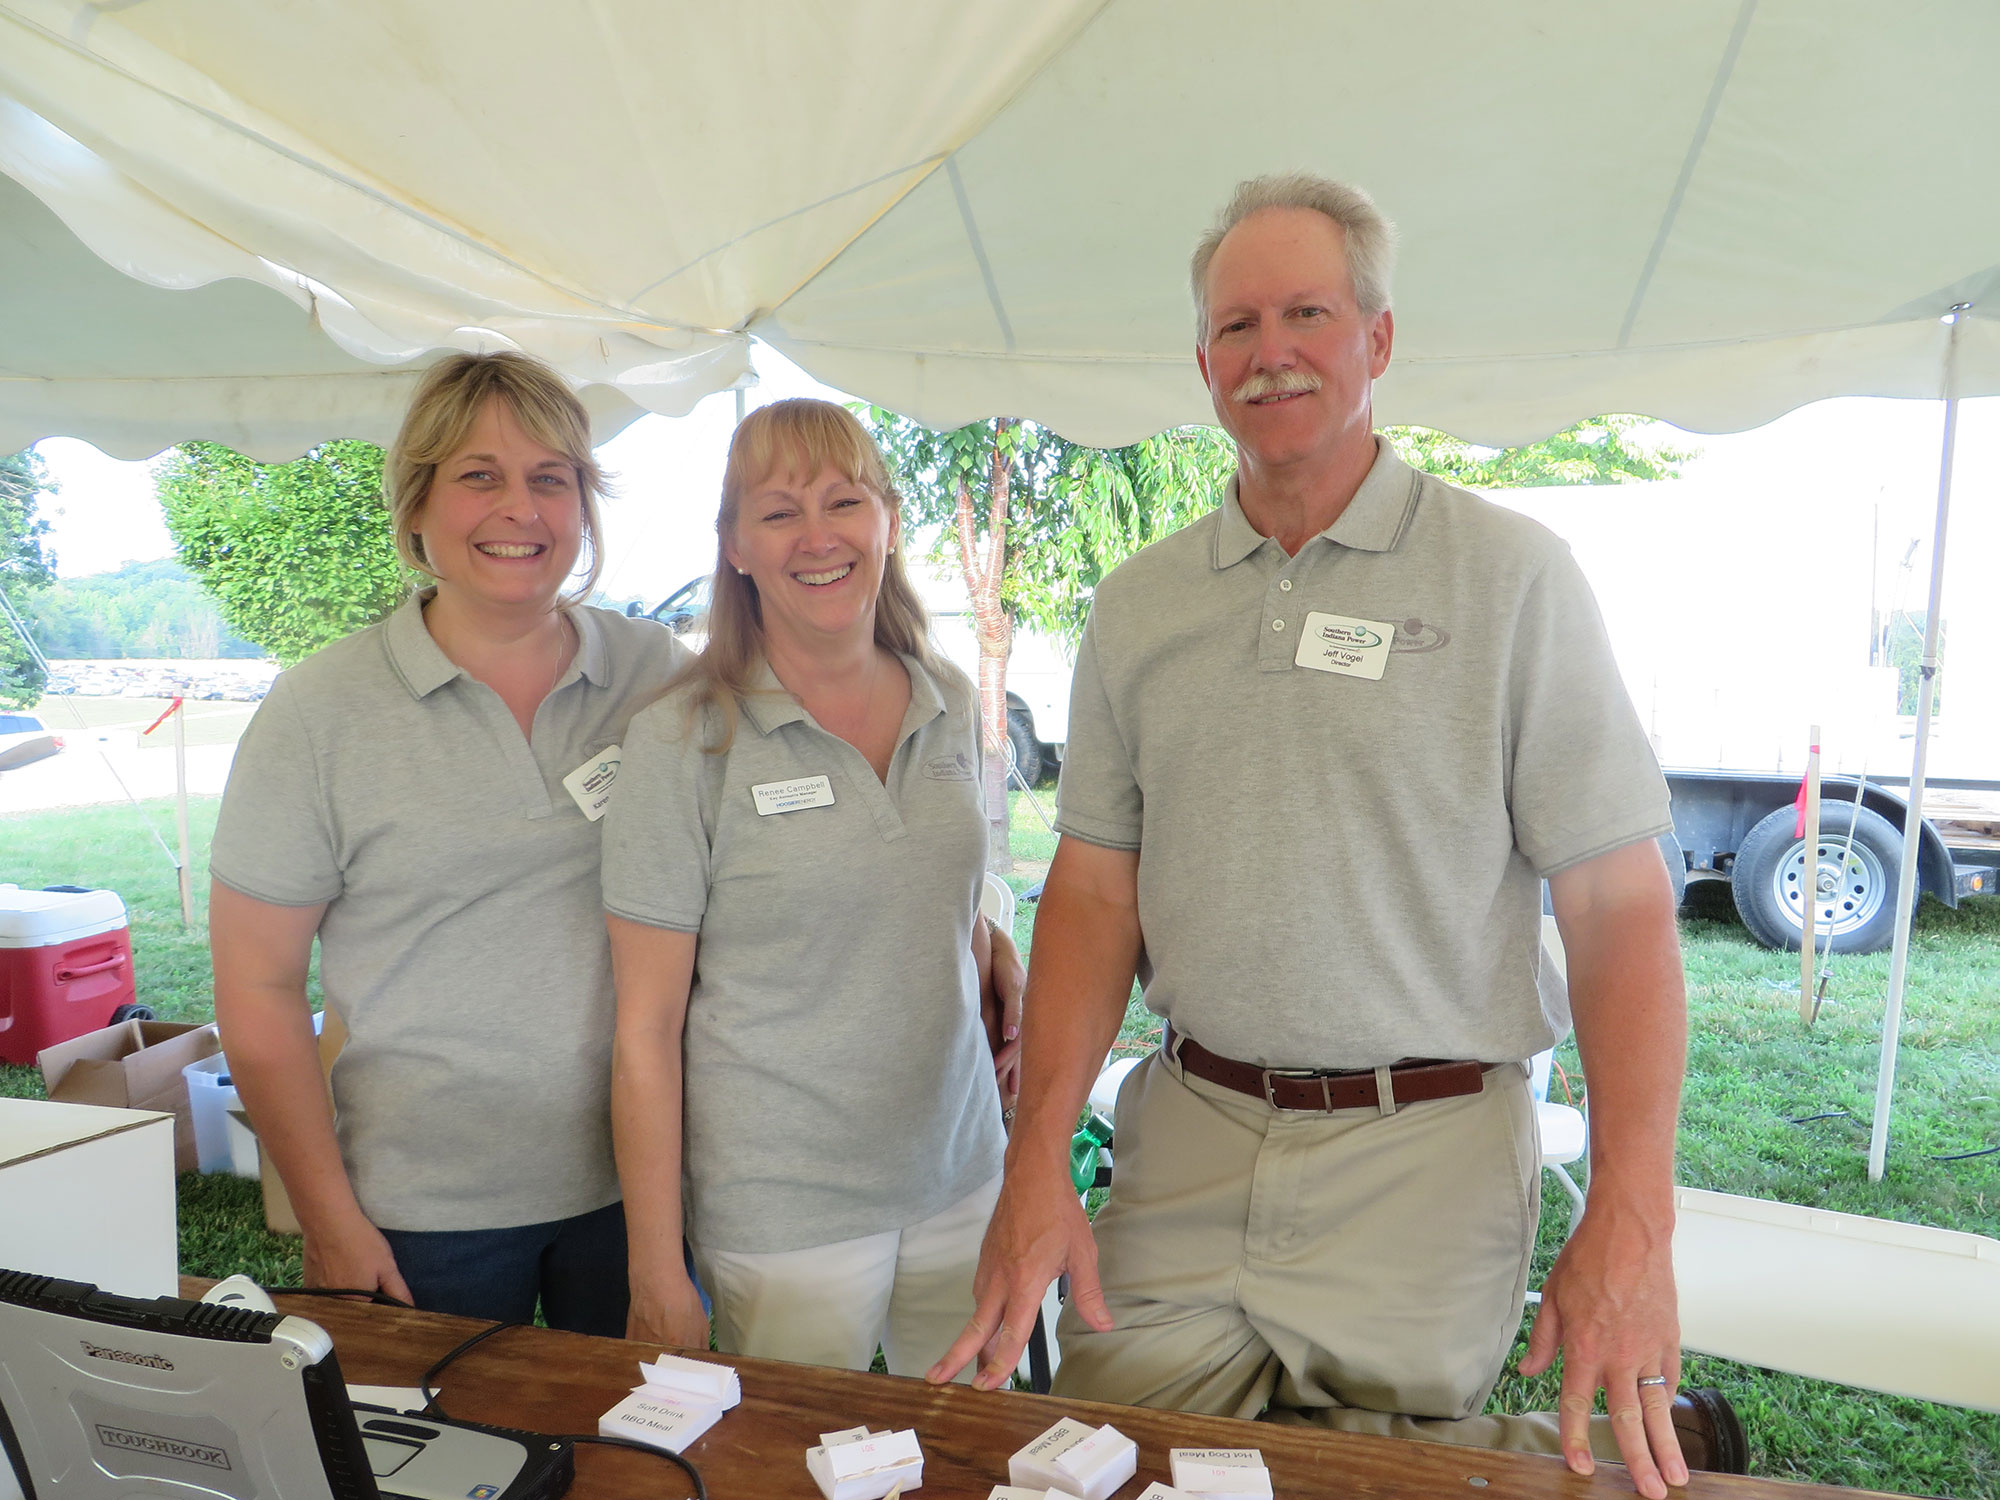 Three Southern Indiana Power employees under a tent outside.